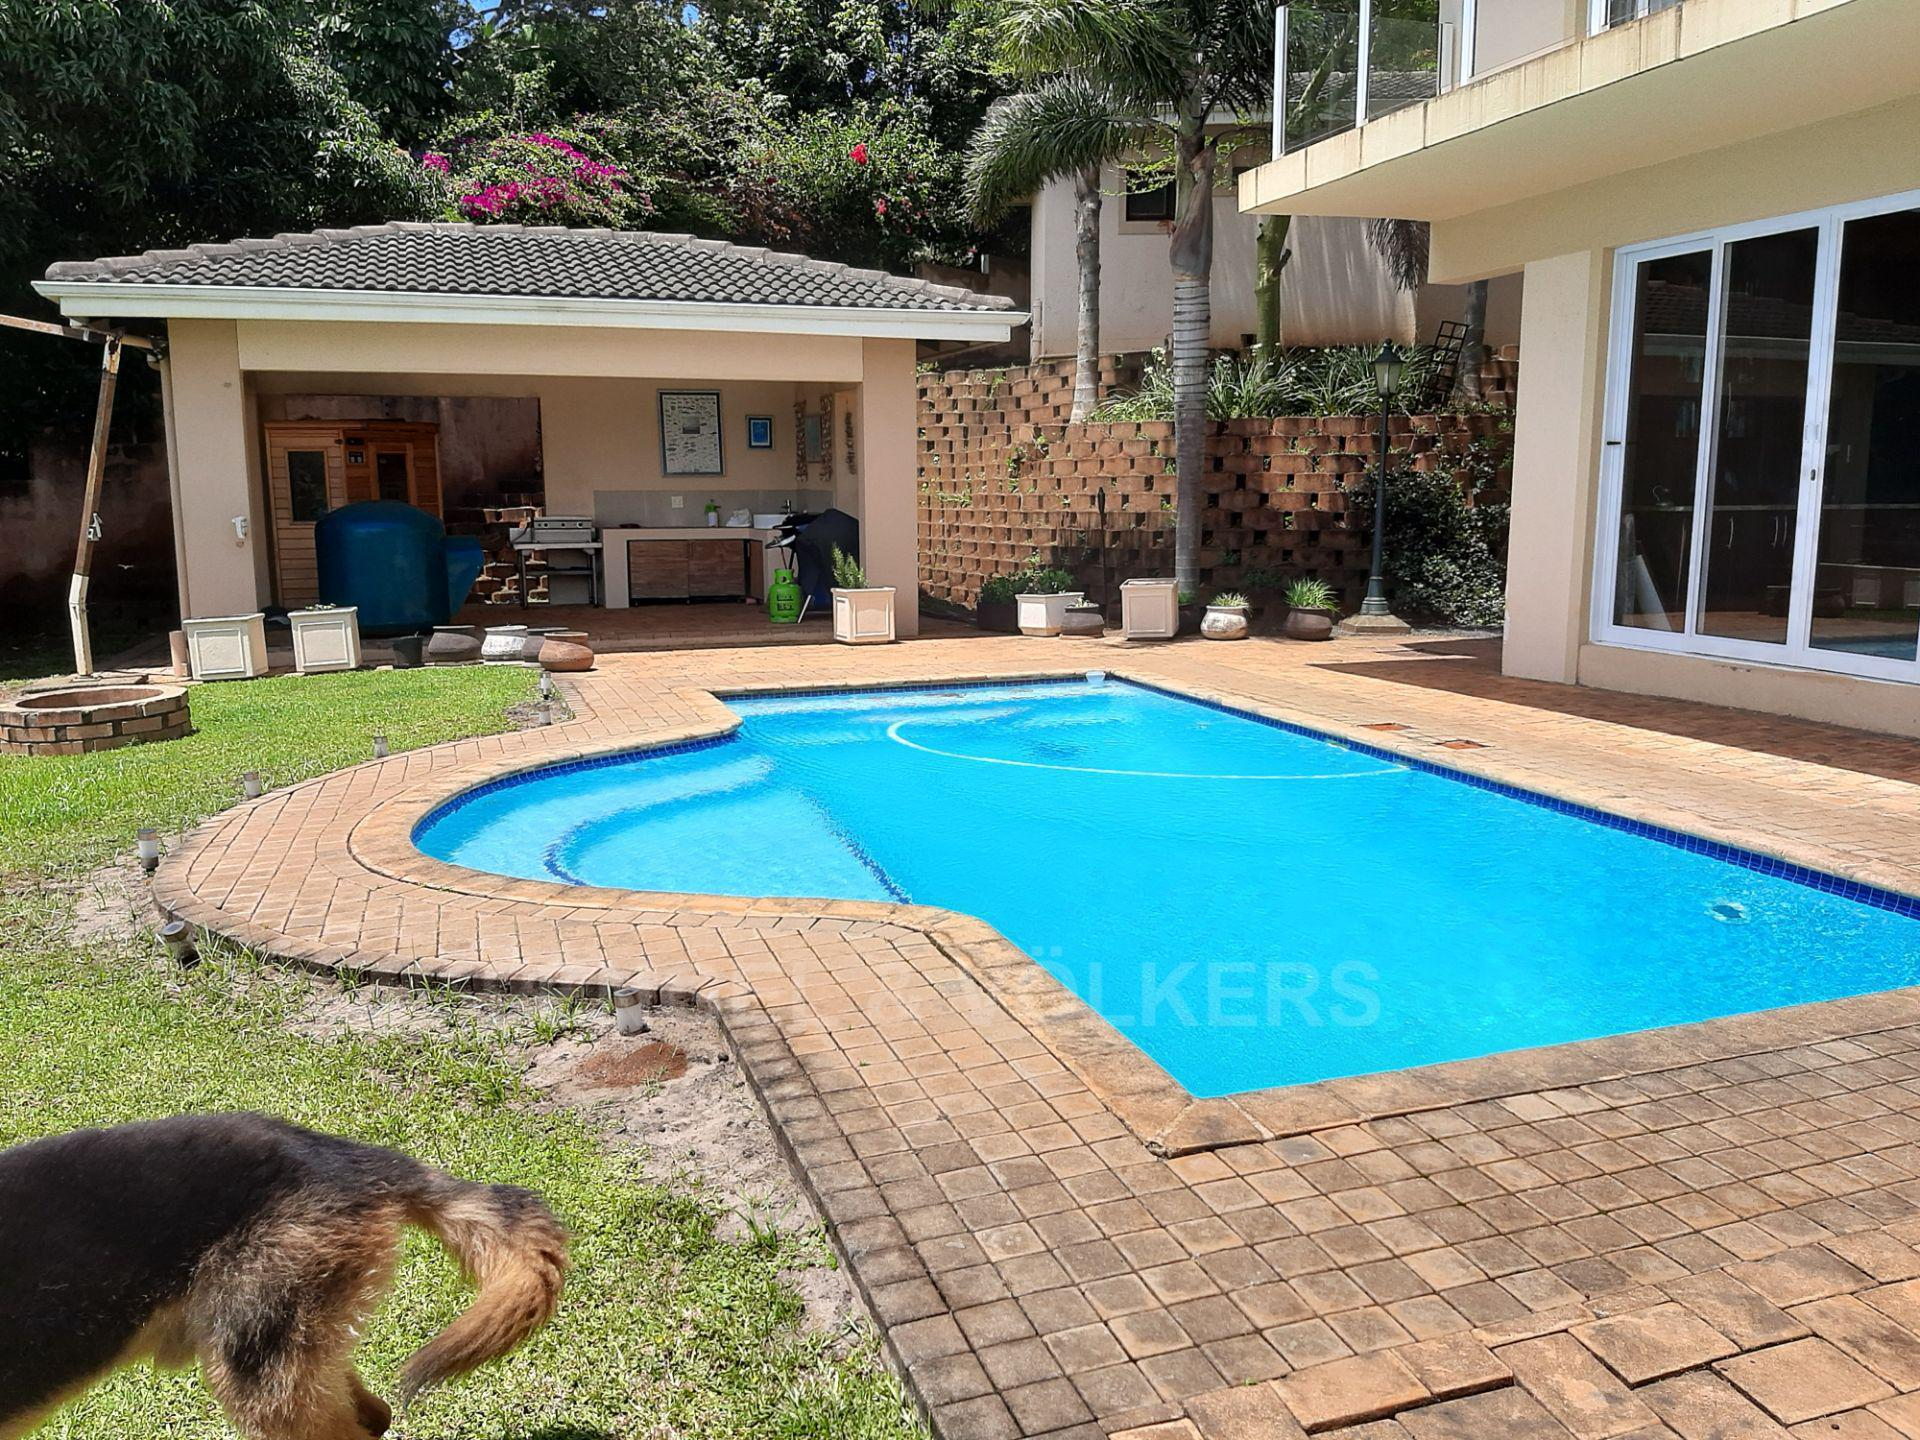 House in Southbroom - Pool and Lapa